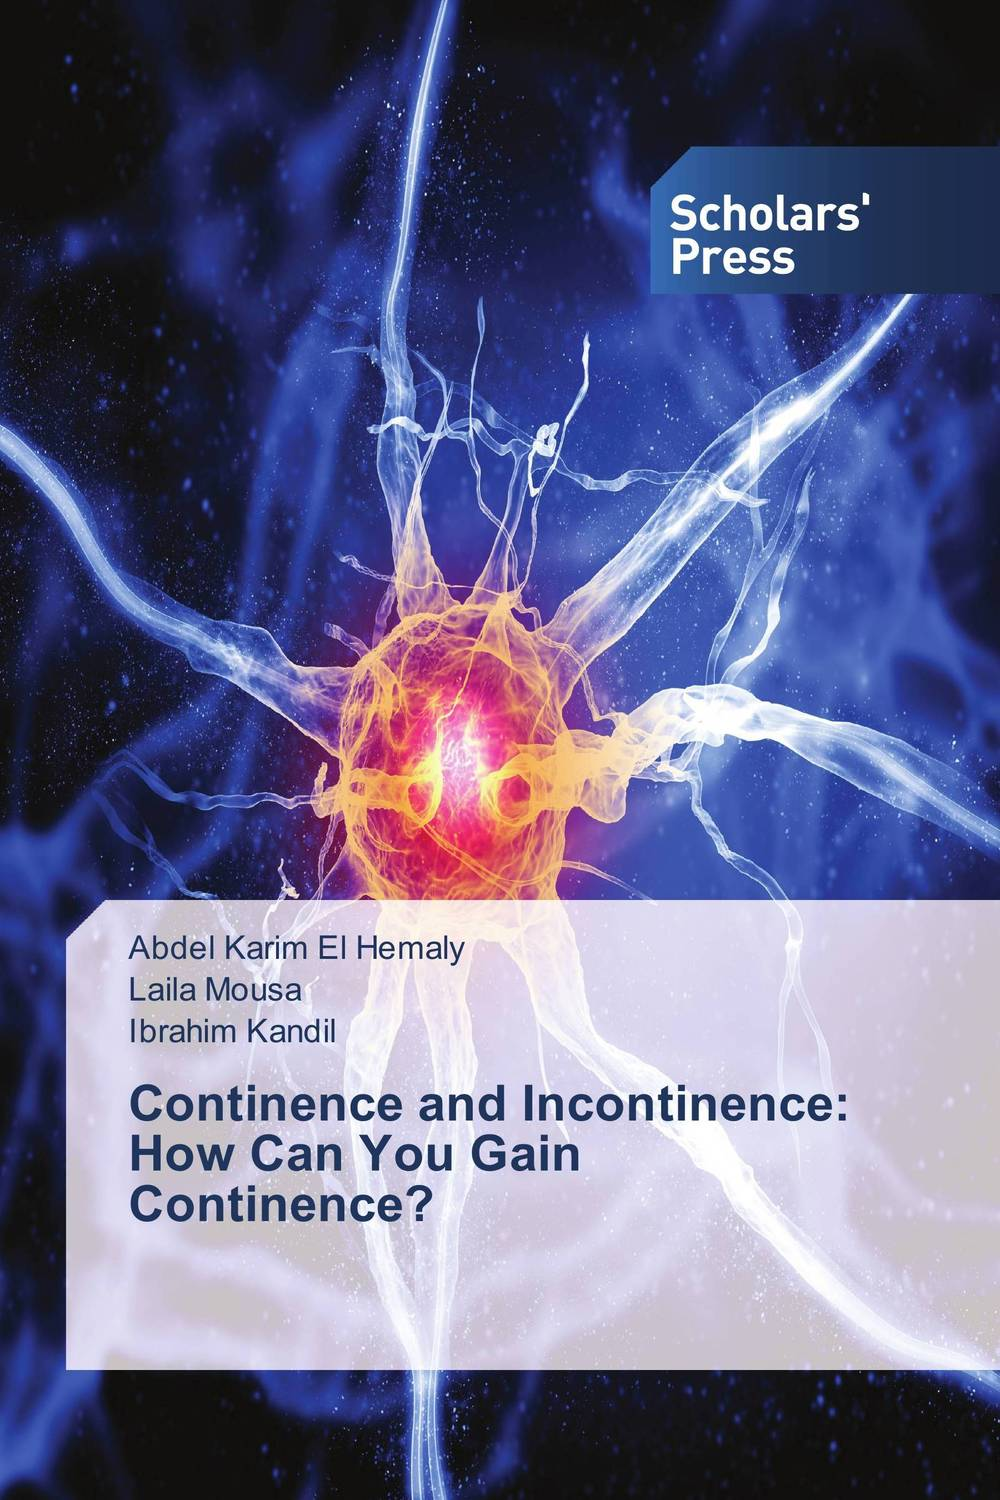 Continence and Incontinence: How Can You Gain Continence? human anatomical sympathetic nervous system anatomy medical model